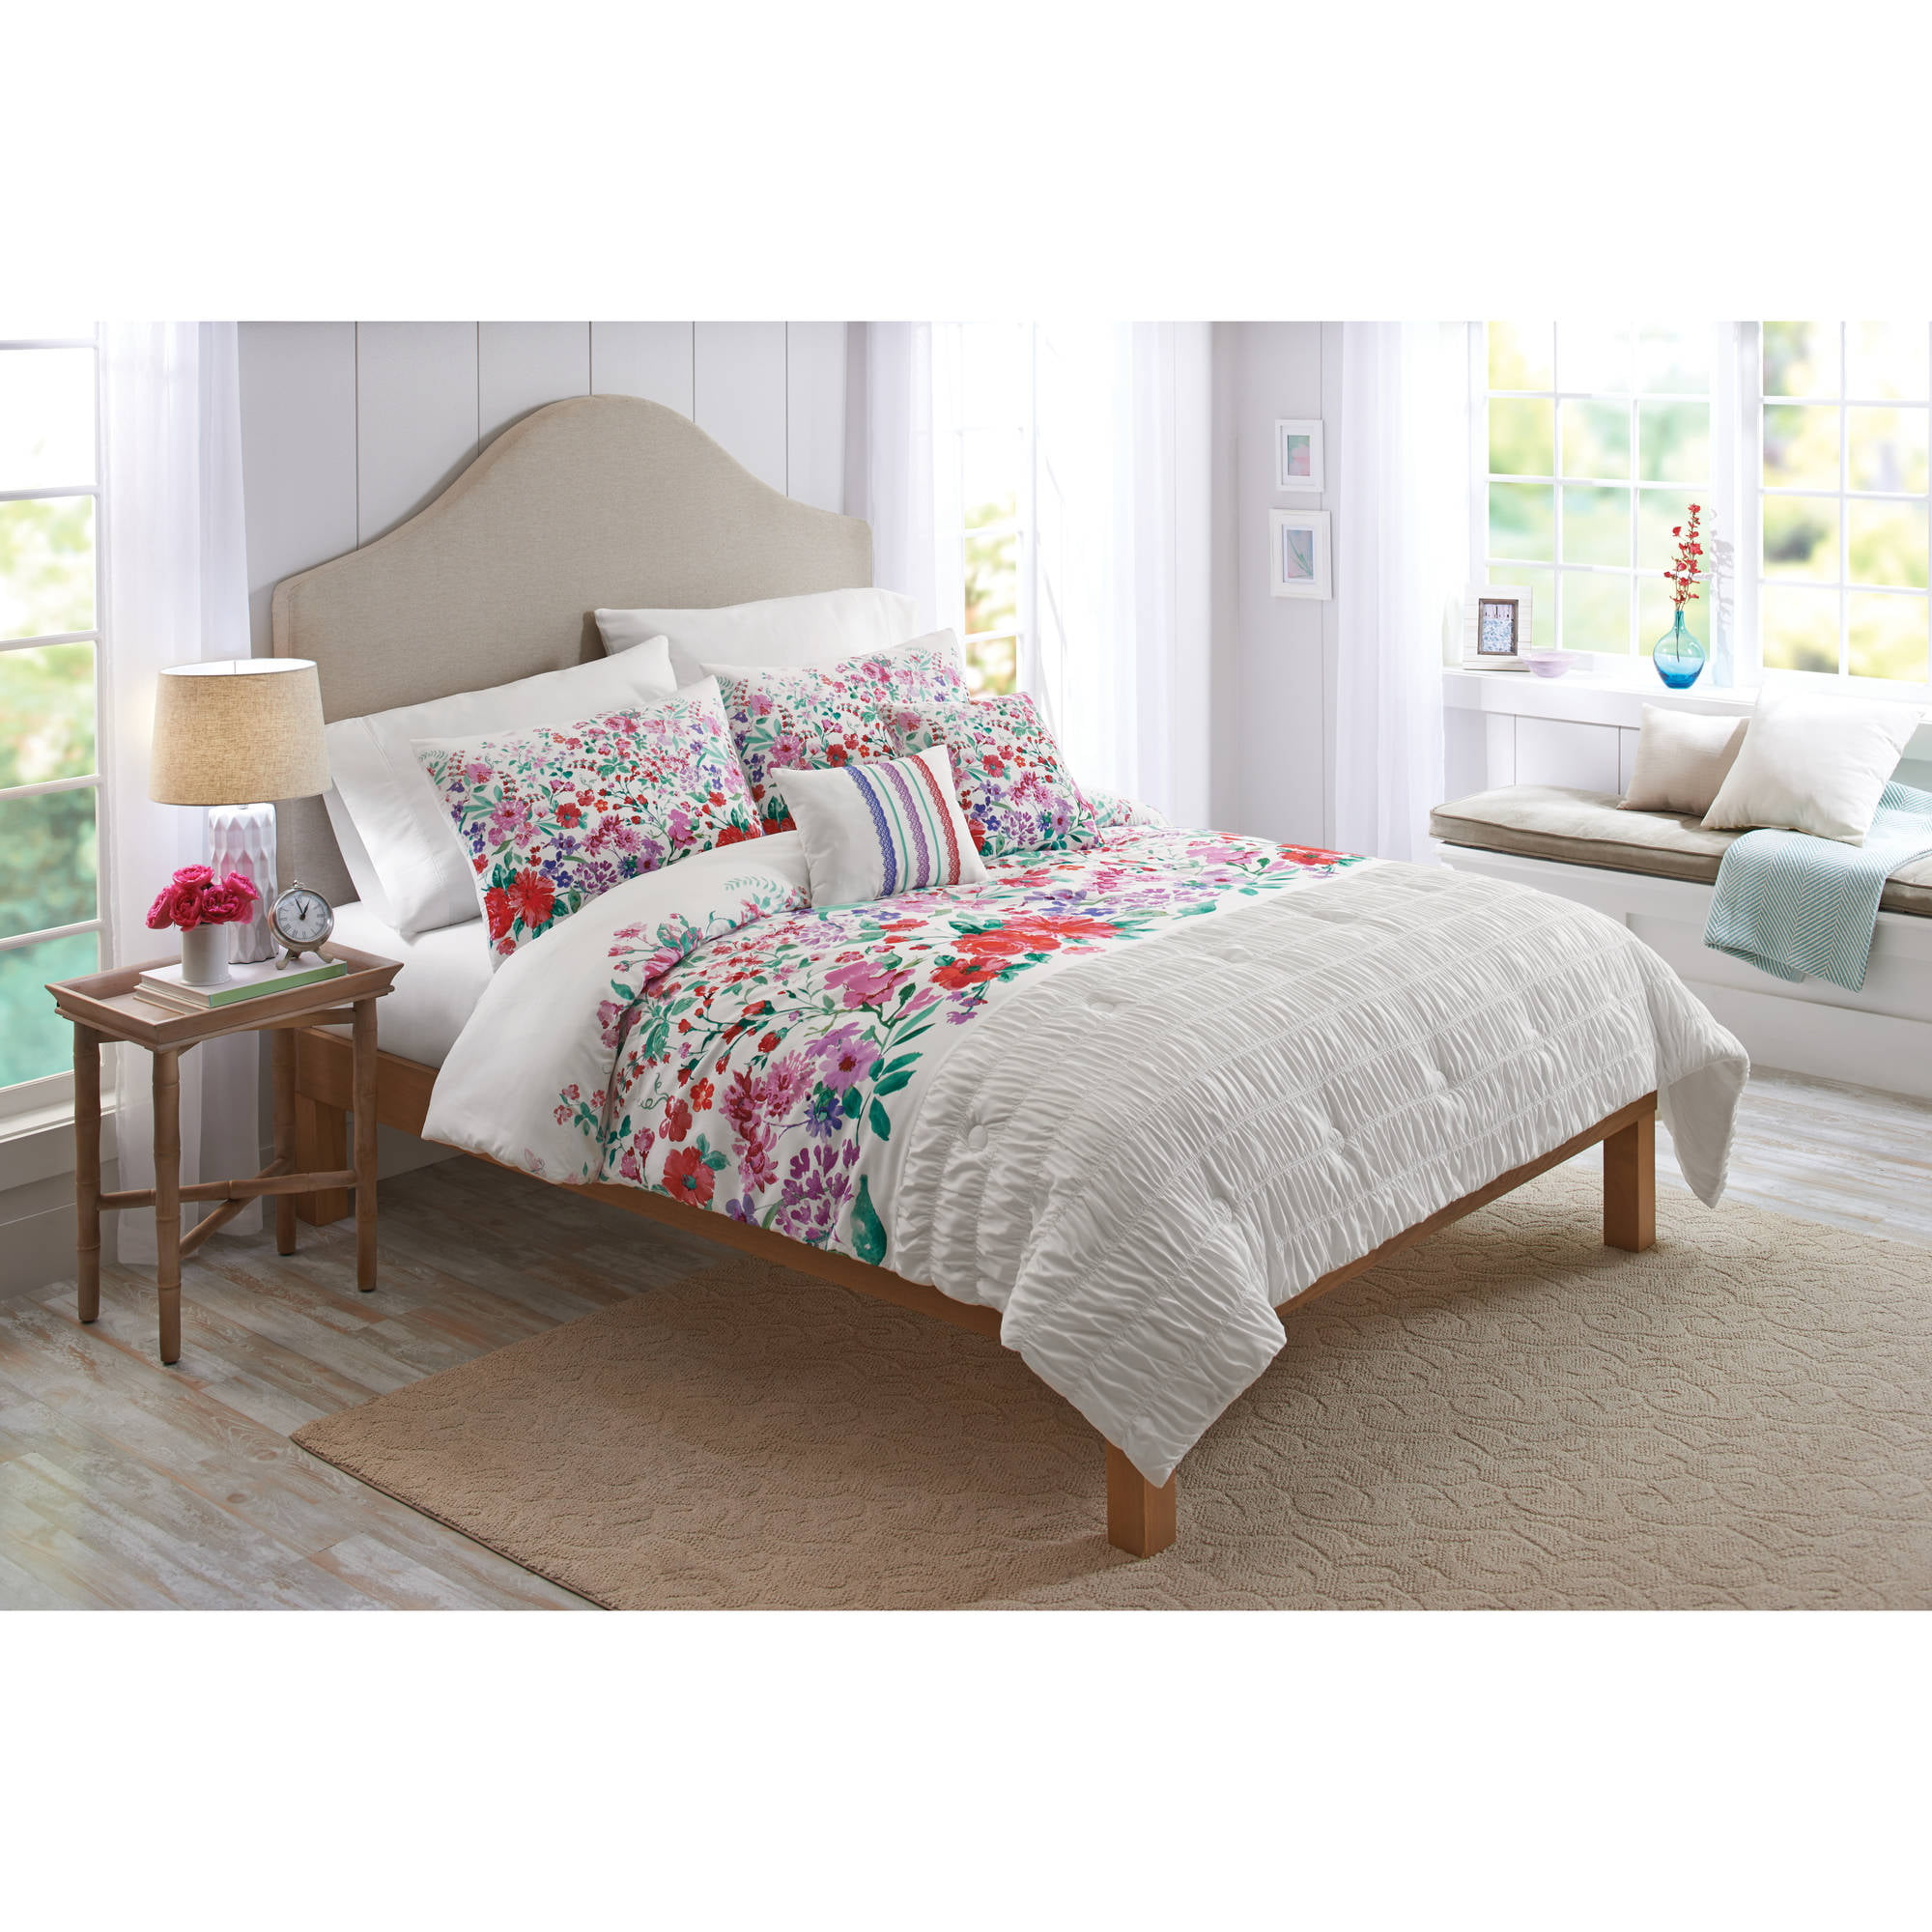 Better Homes and Gardens Watercolor Floral 5 Piece Bedding